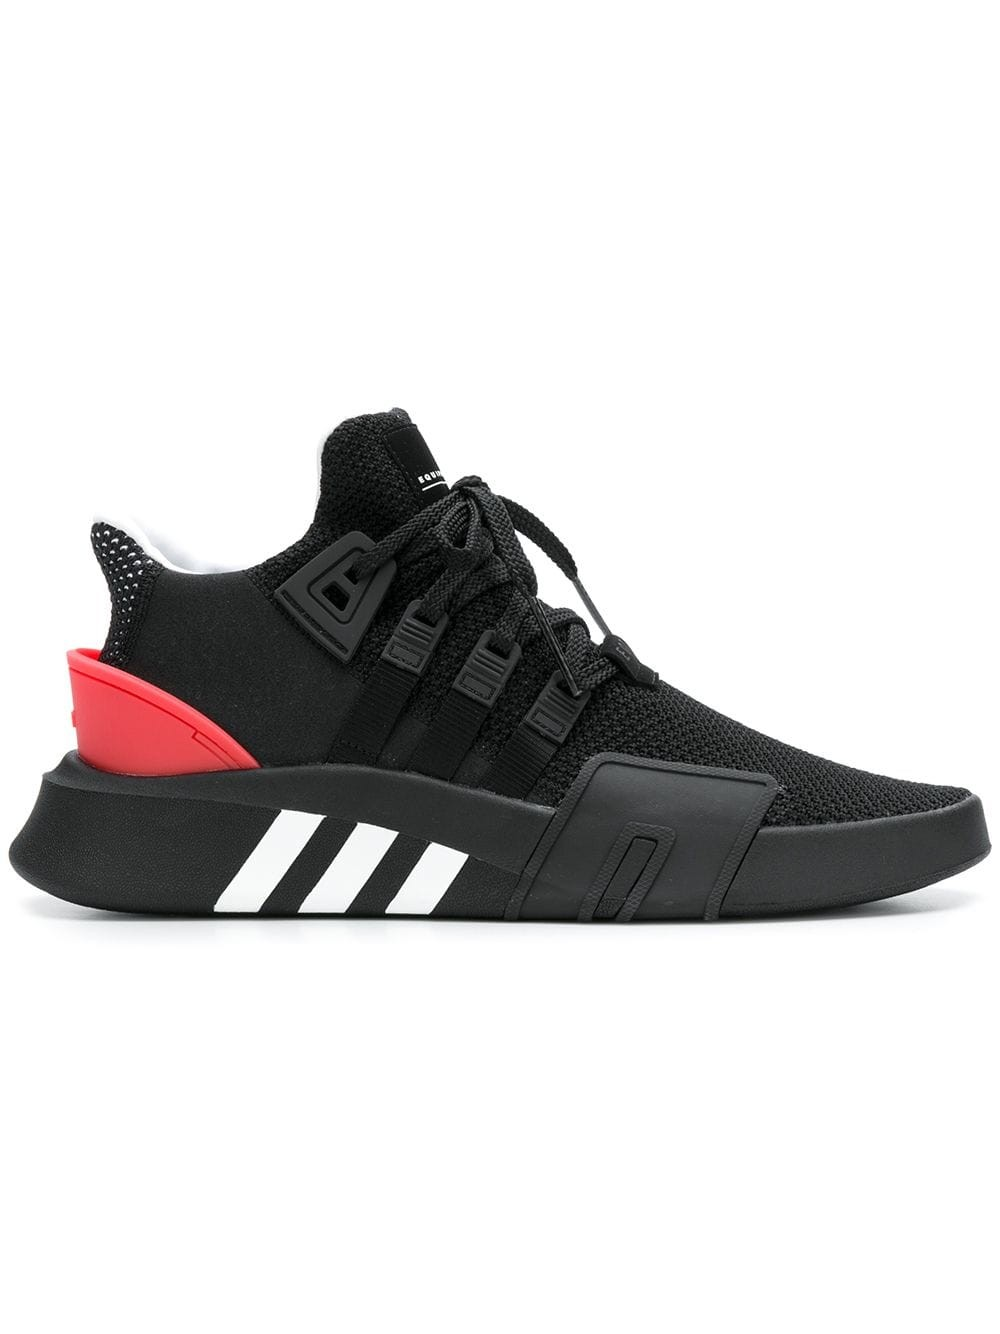 Adidas Originals EQT Equipment Bask ADV Noir/Rouge/Blanche AQ1013